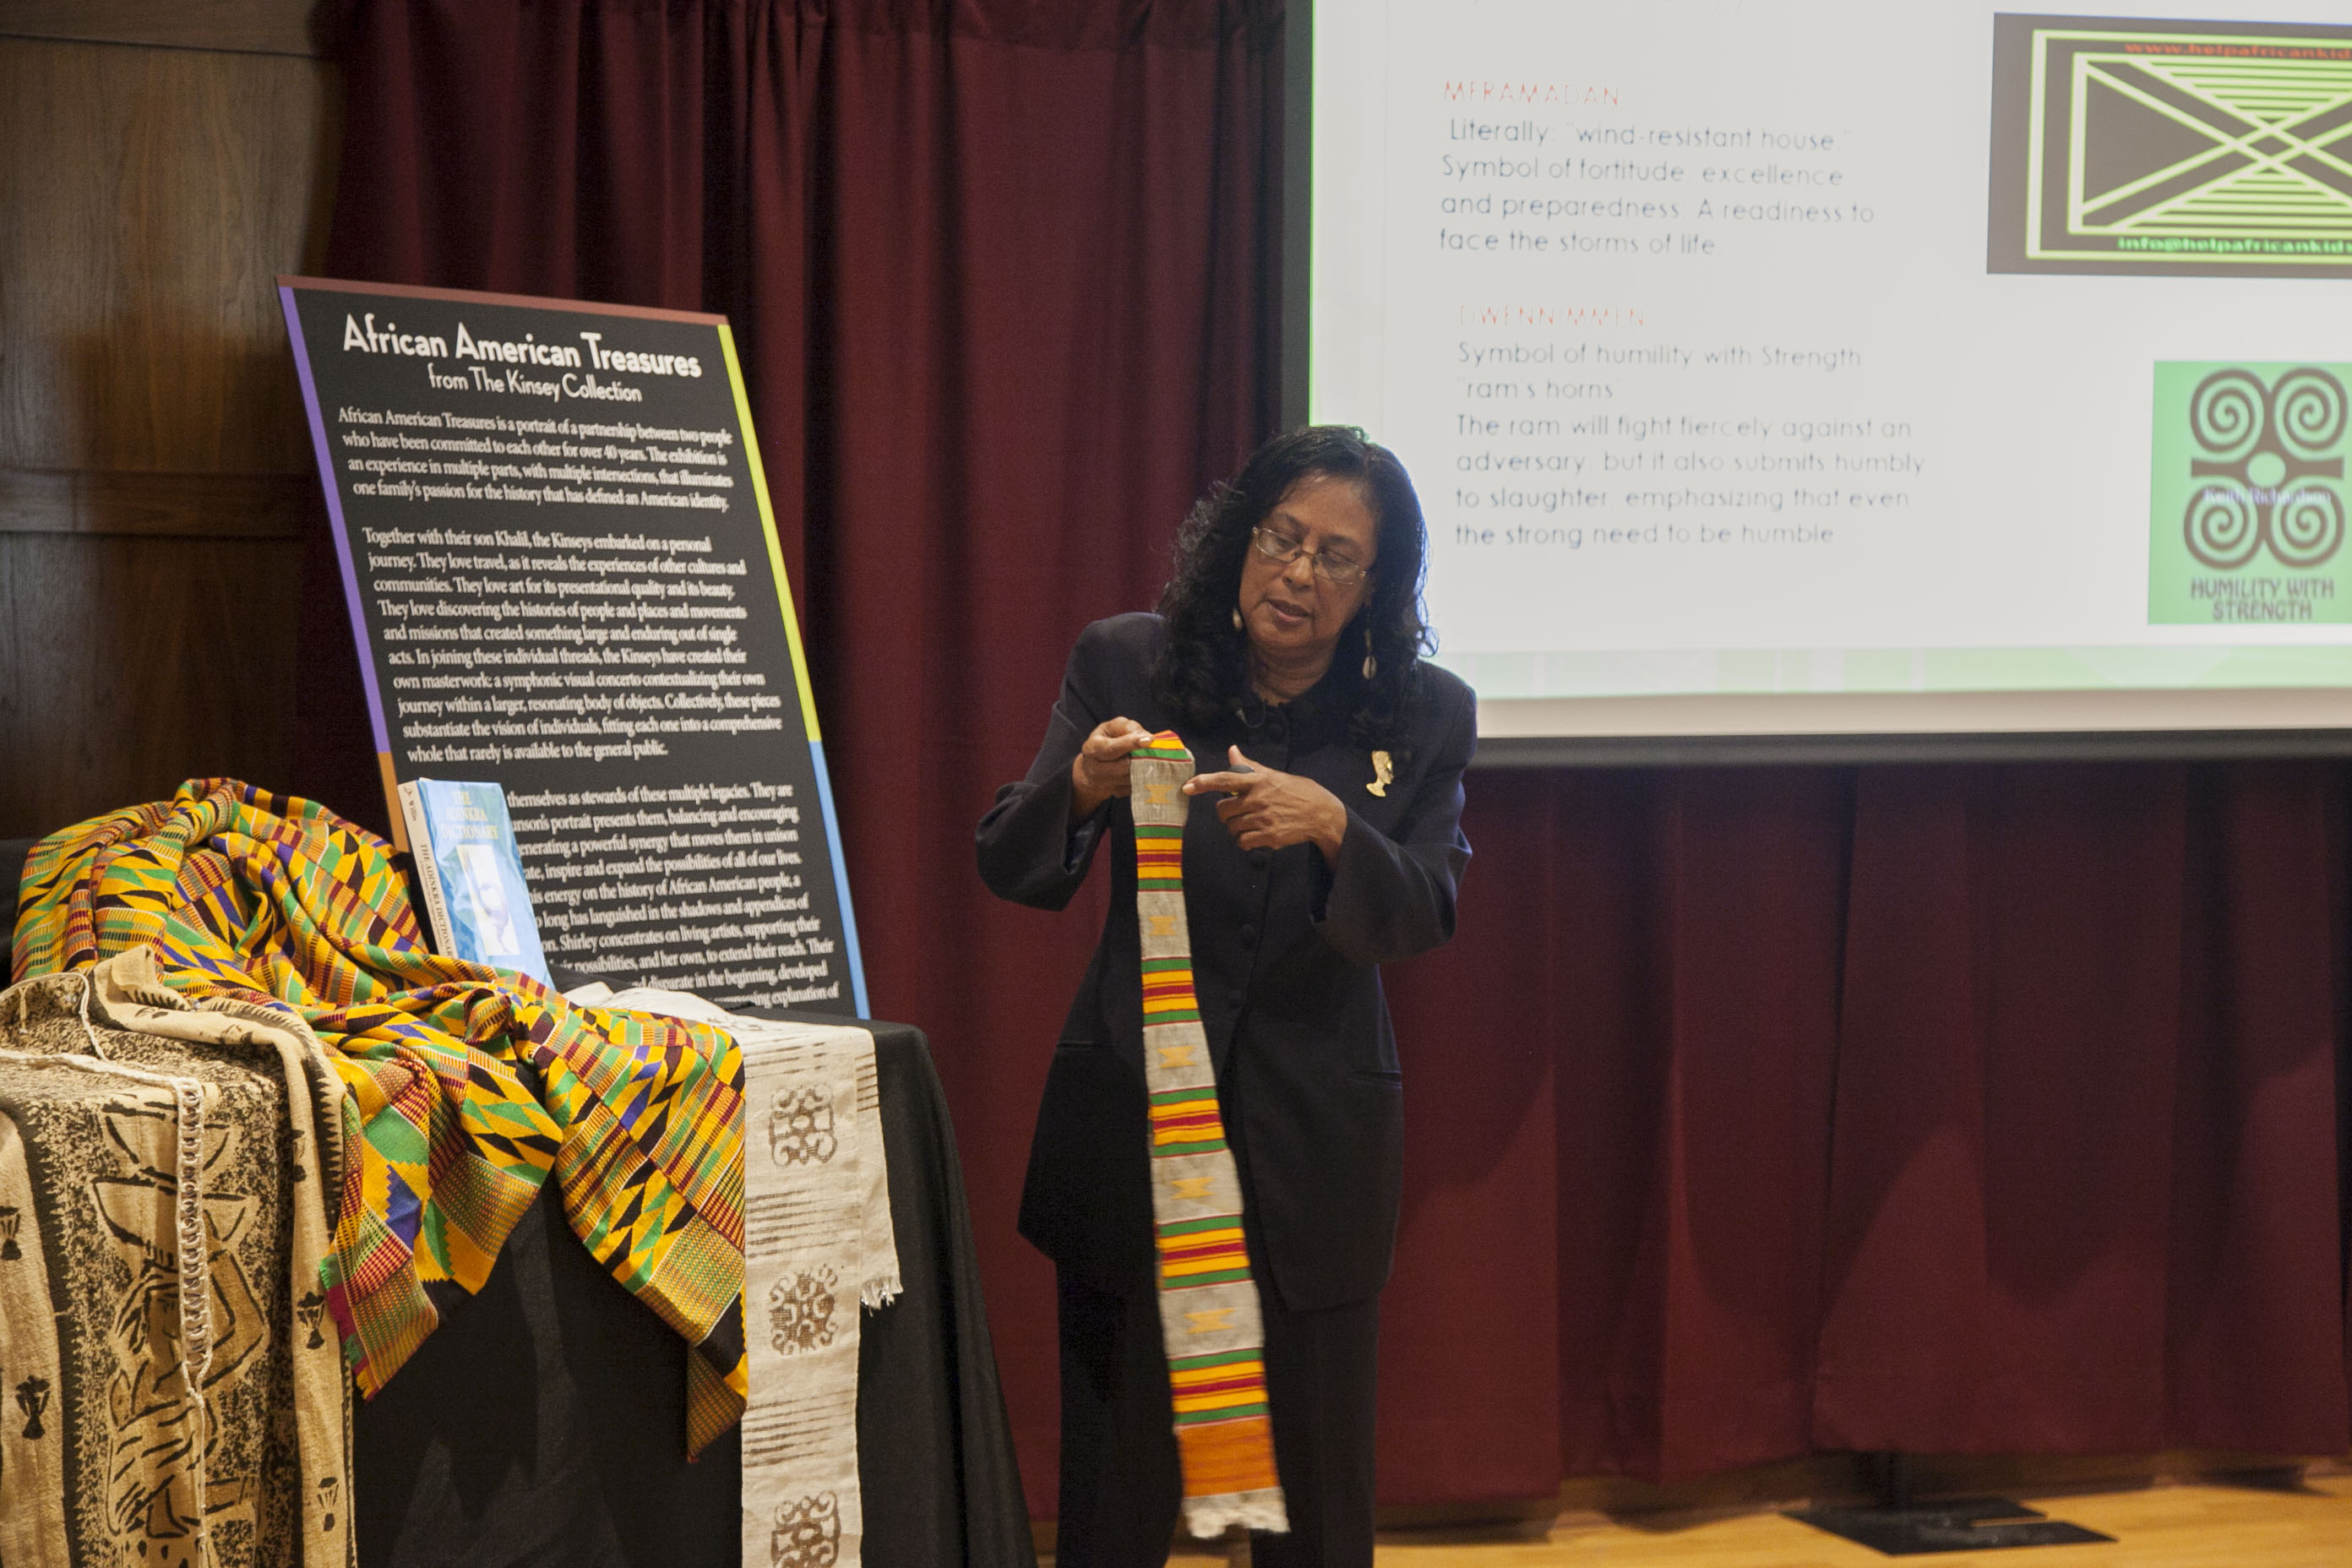 Shirley Hanshaw, MSU associate professor of English and African American Studies faculty member, led the Thursday [April 23] lecture that was part of the The Kinsey Collection lecture series at Mitchell Memorial Library.